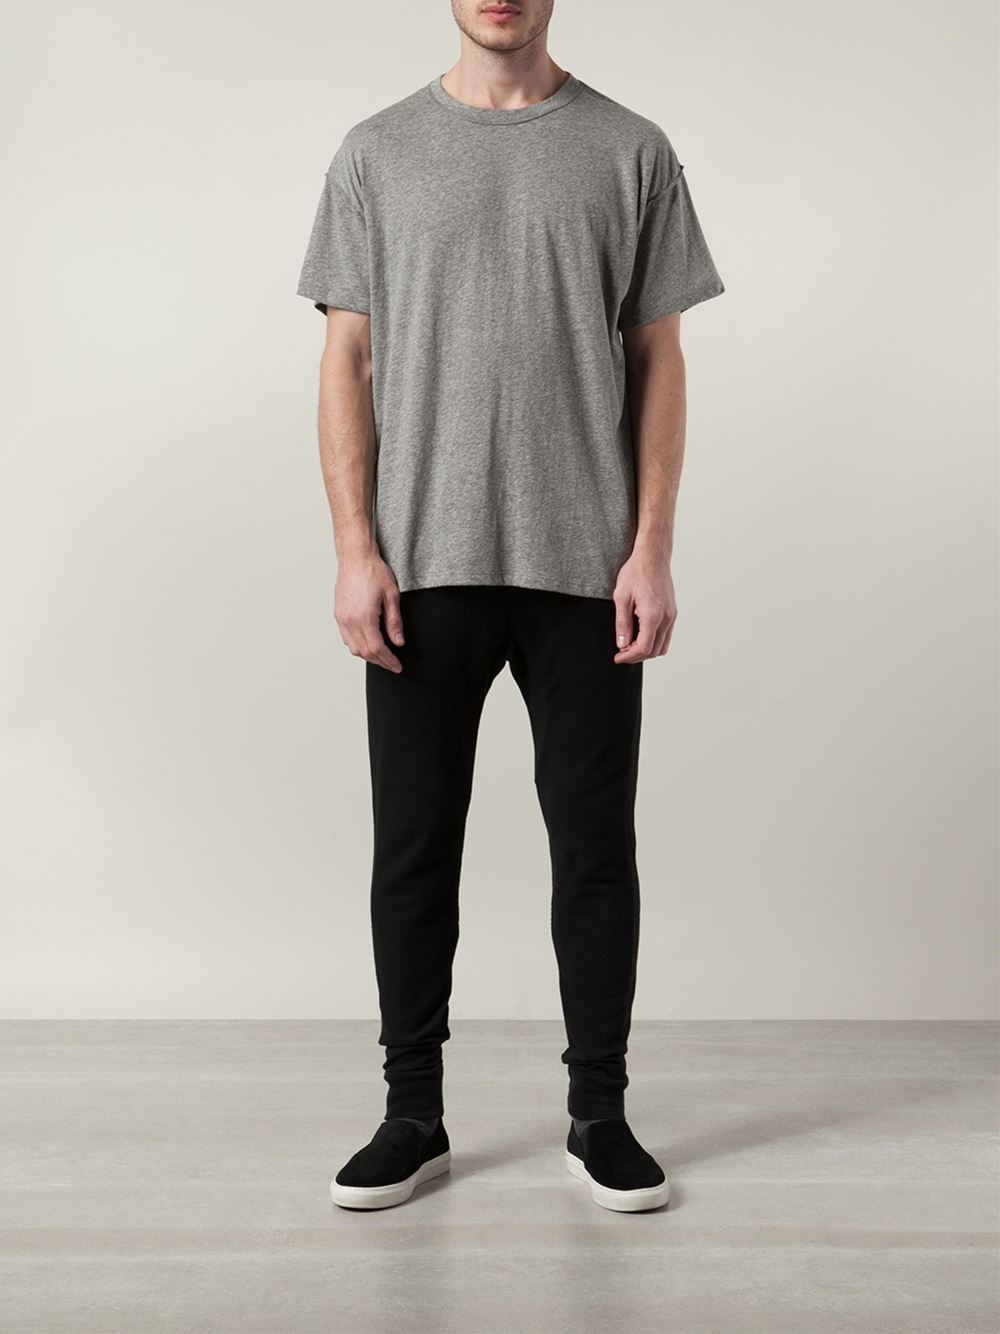 Fear Of God Crew Neck T Shirt In Gray For Men Lyst